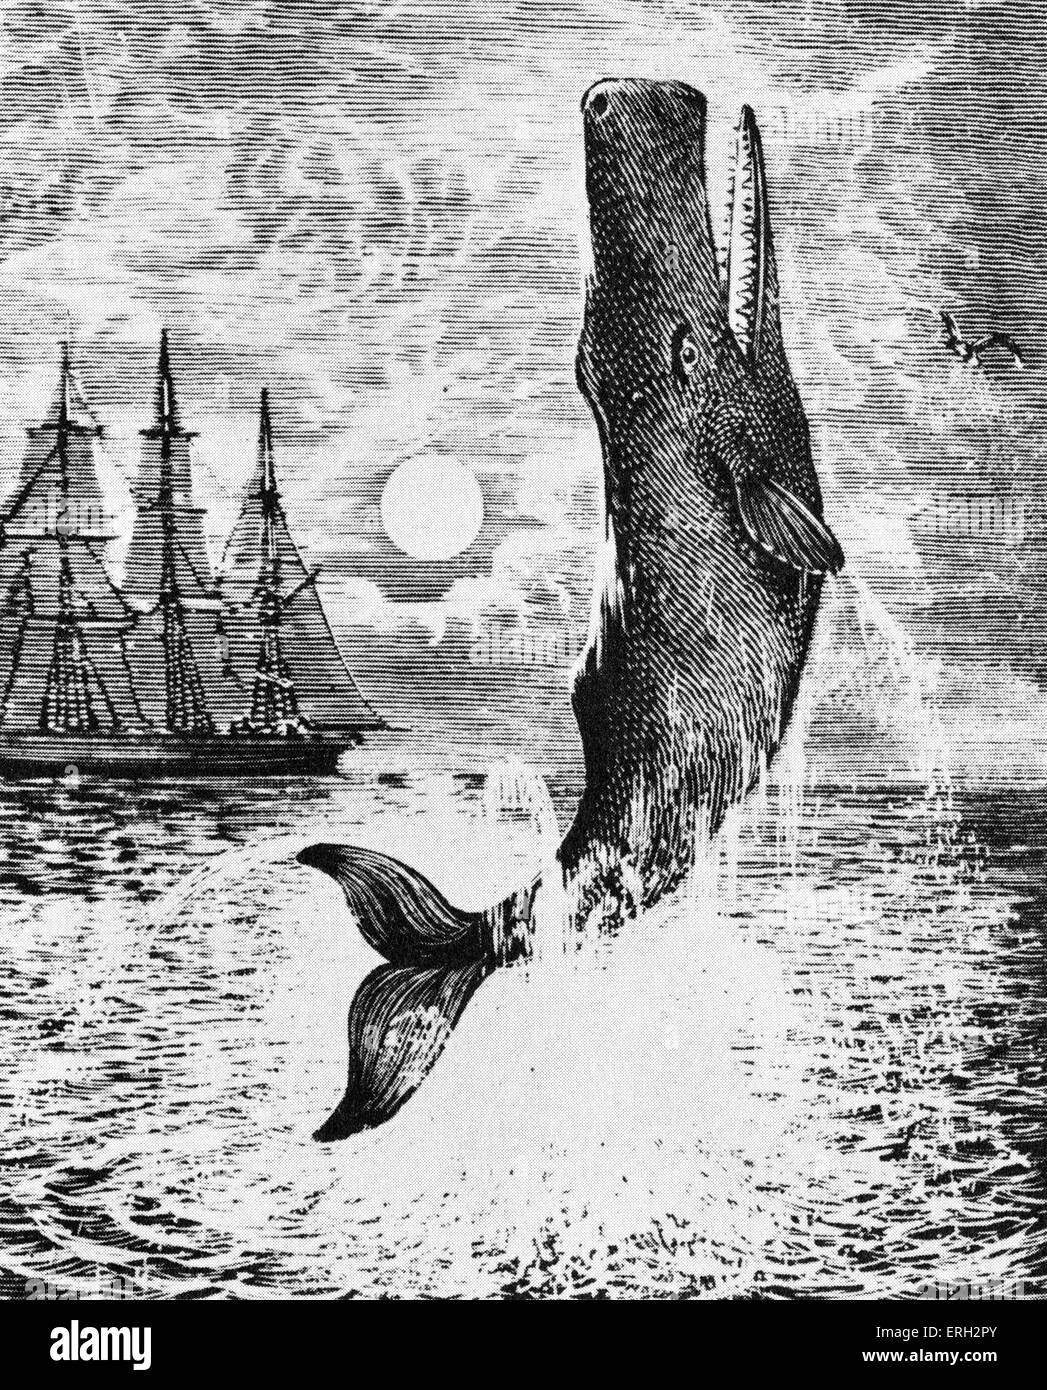 Symbolism and Foreshadowing in Herman Melville's Moby Dick Essay Sample